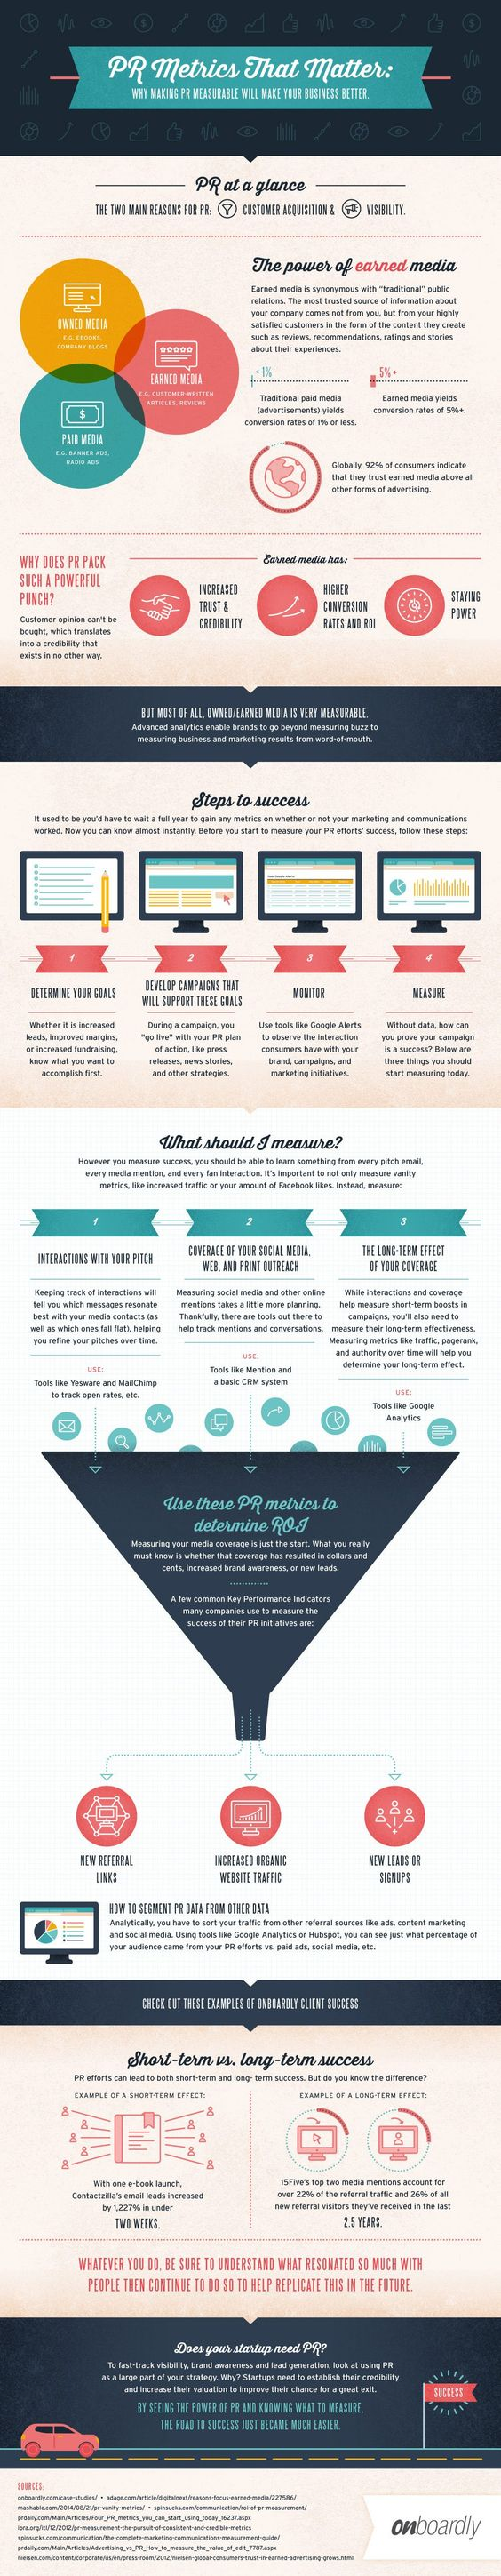 what PR metrics you should measure and why - #infographic